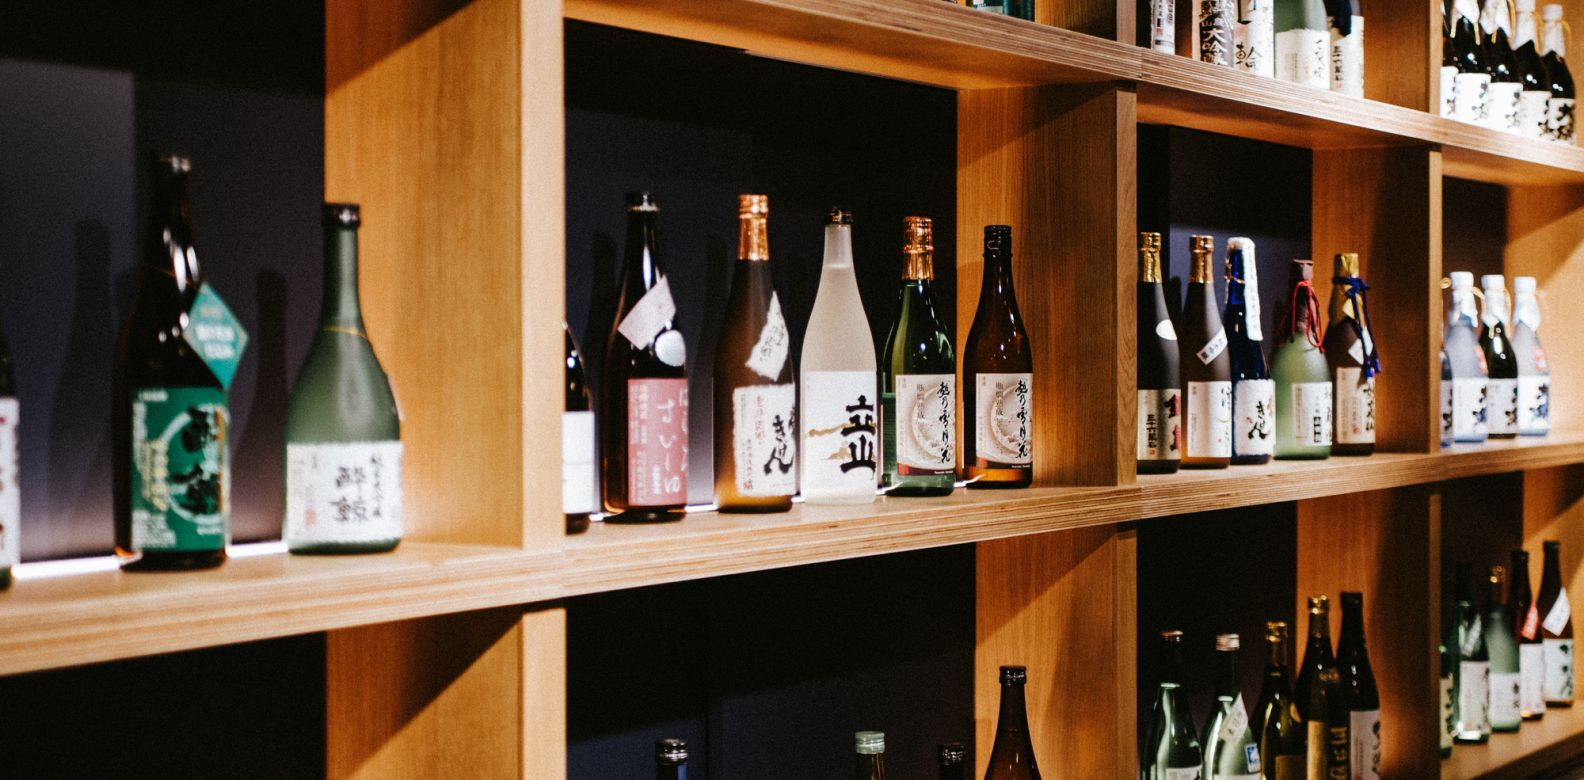 Where To Find The Best Sake In Hong Kong